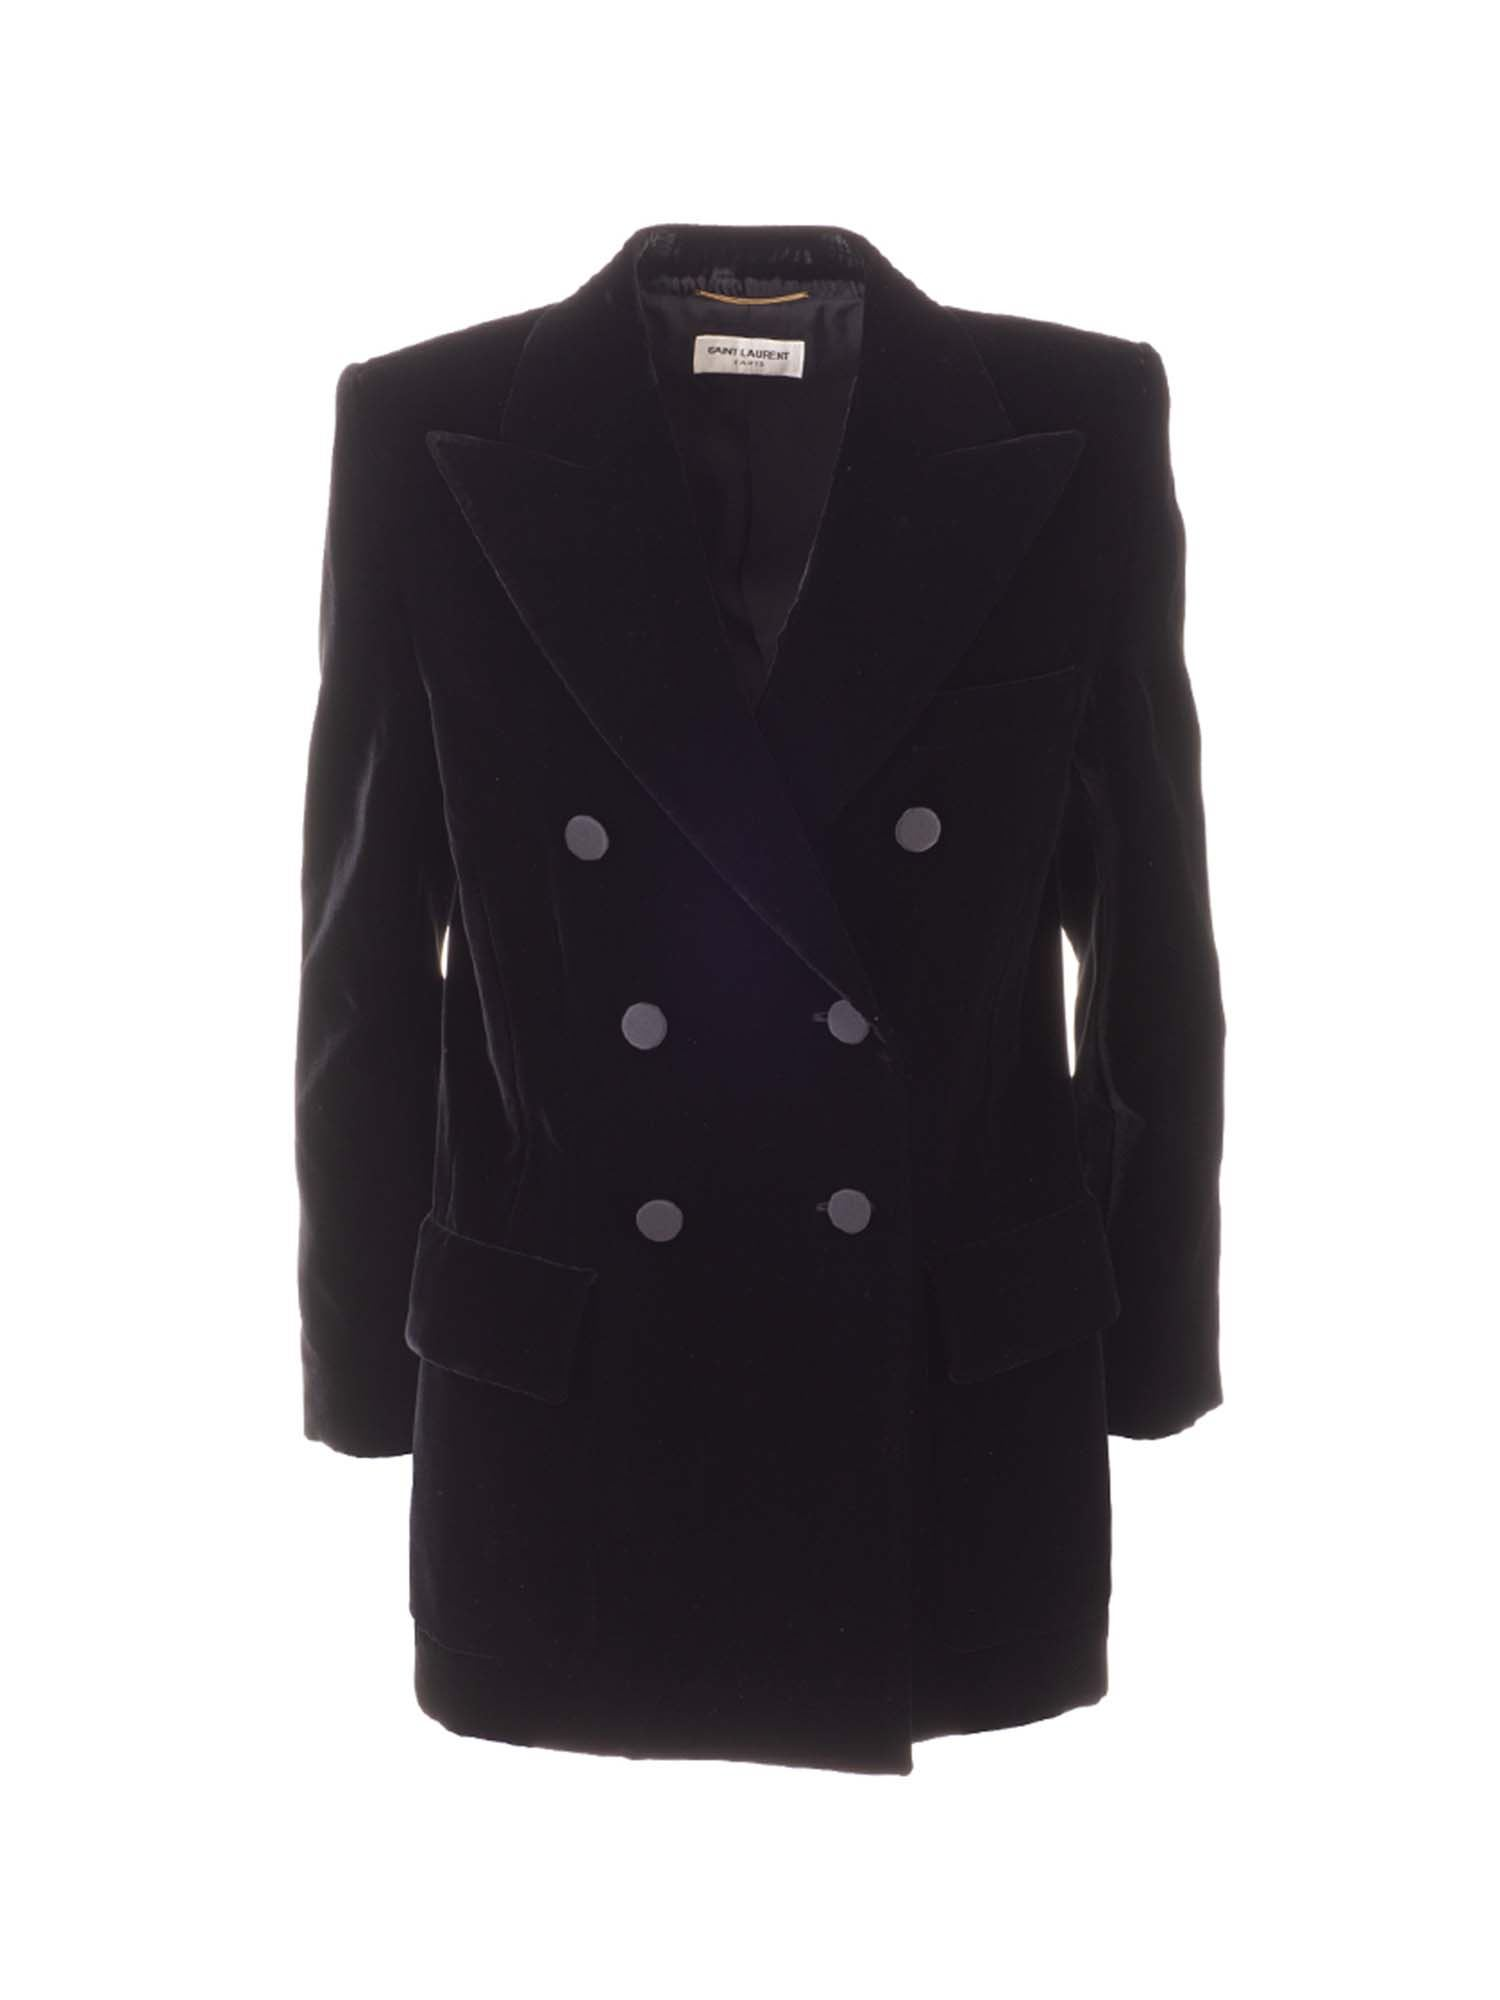 Saint Laurent DOUBLE-BREASTED JACKET IN BLACK